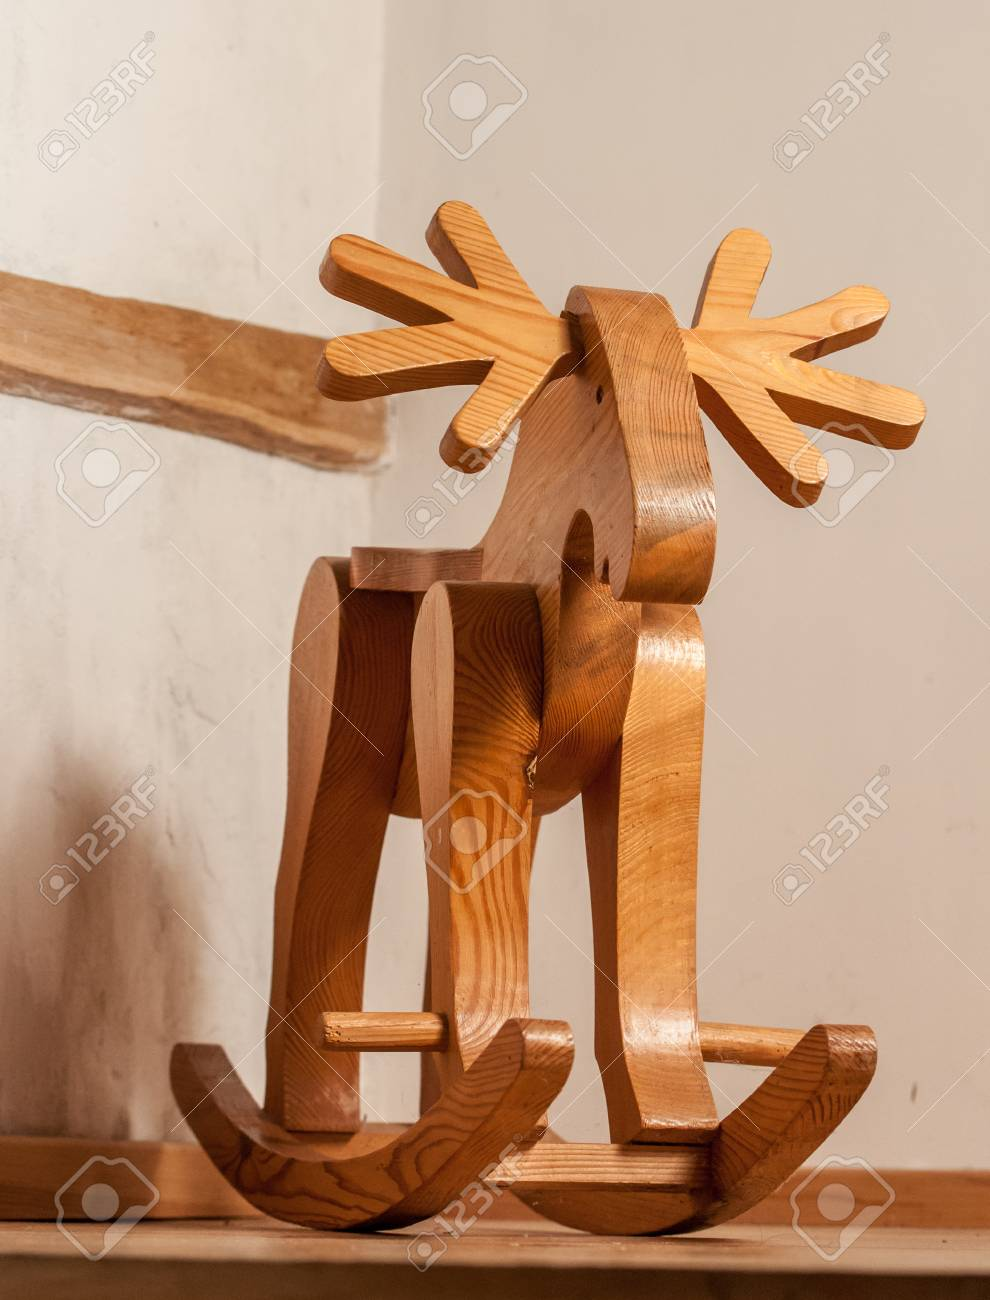 Stock Photo - Wooden deer a rocking chair toy high quality & Wooden Deer A Rocking Chair Toy High Quality Stock Photo Picture ...